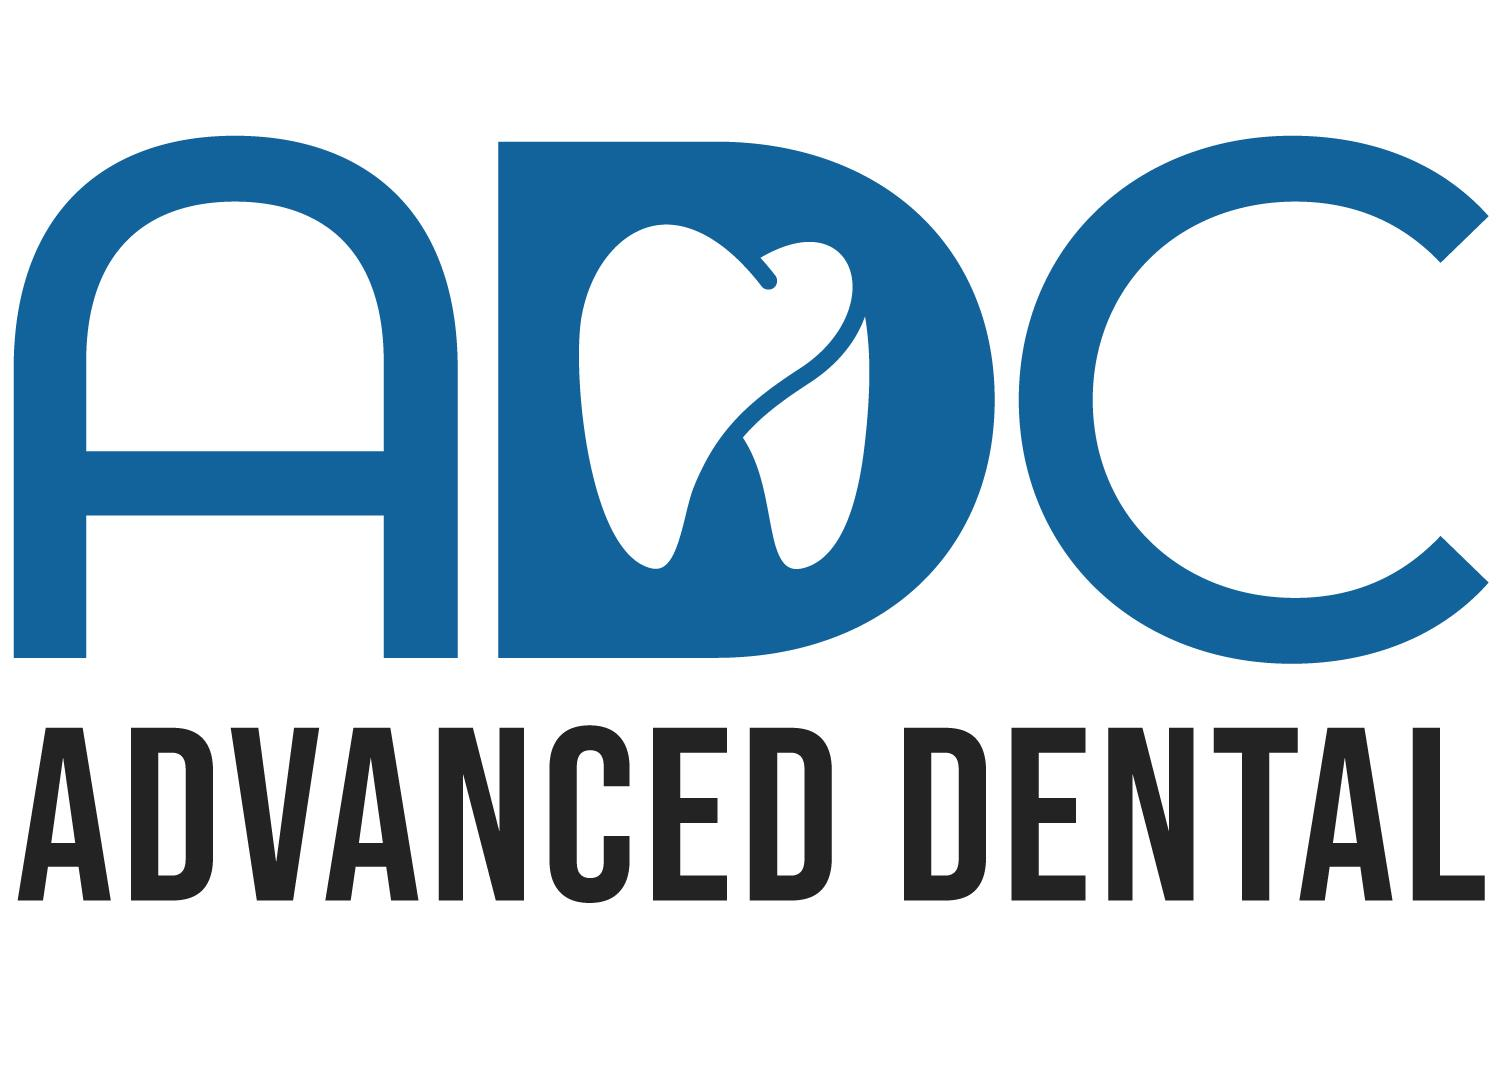 Advanced Dental ADC